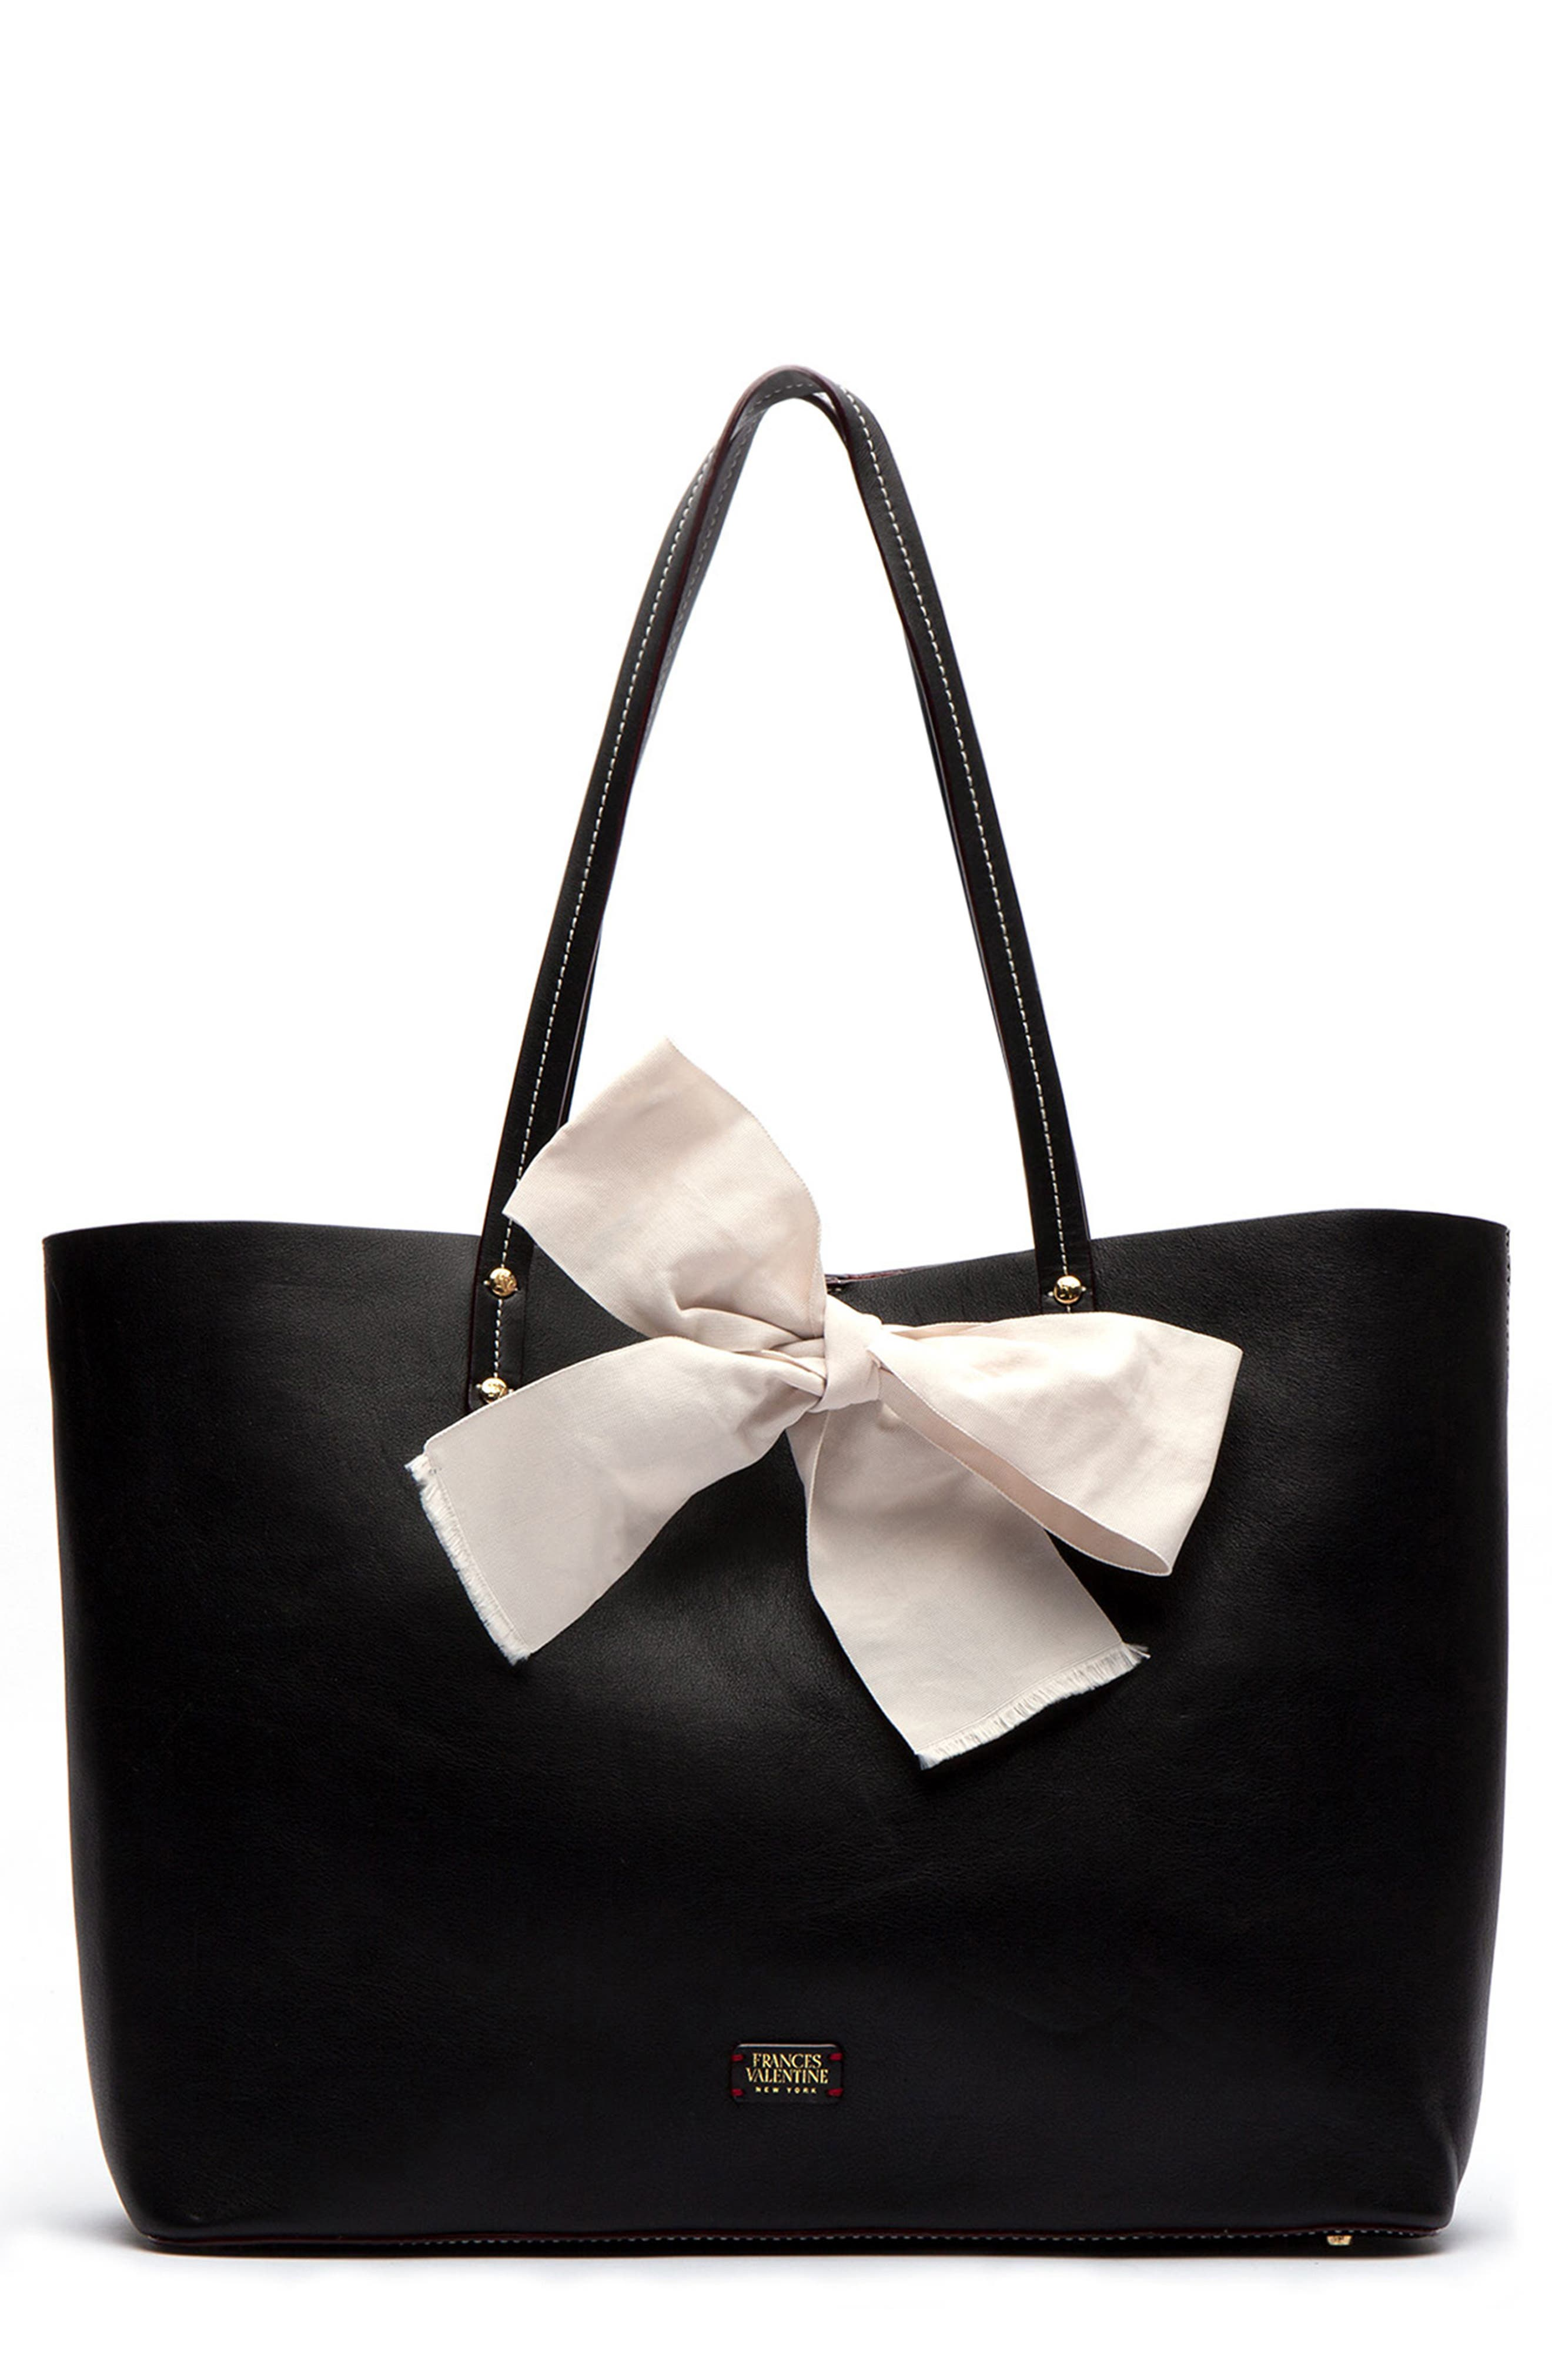 Trixie Leather Tote,                         Main,                         color, BLACK/ OYSTER